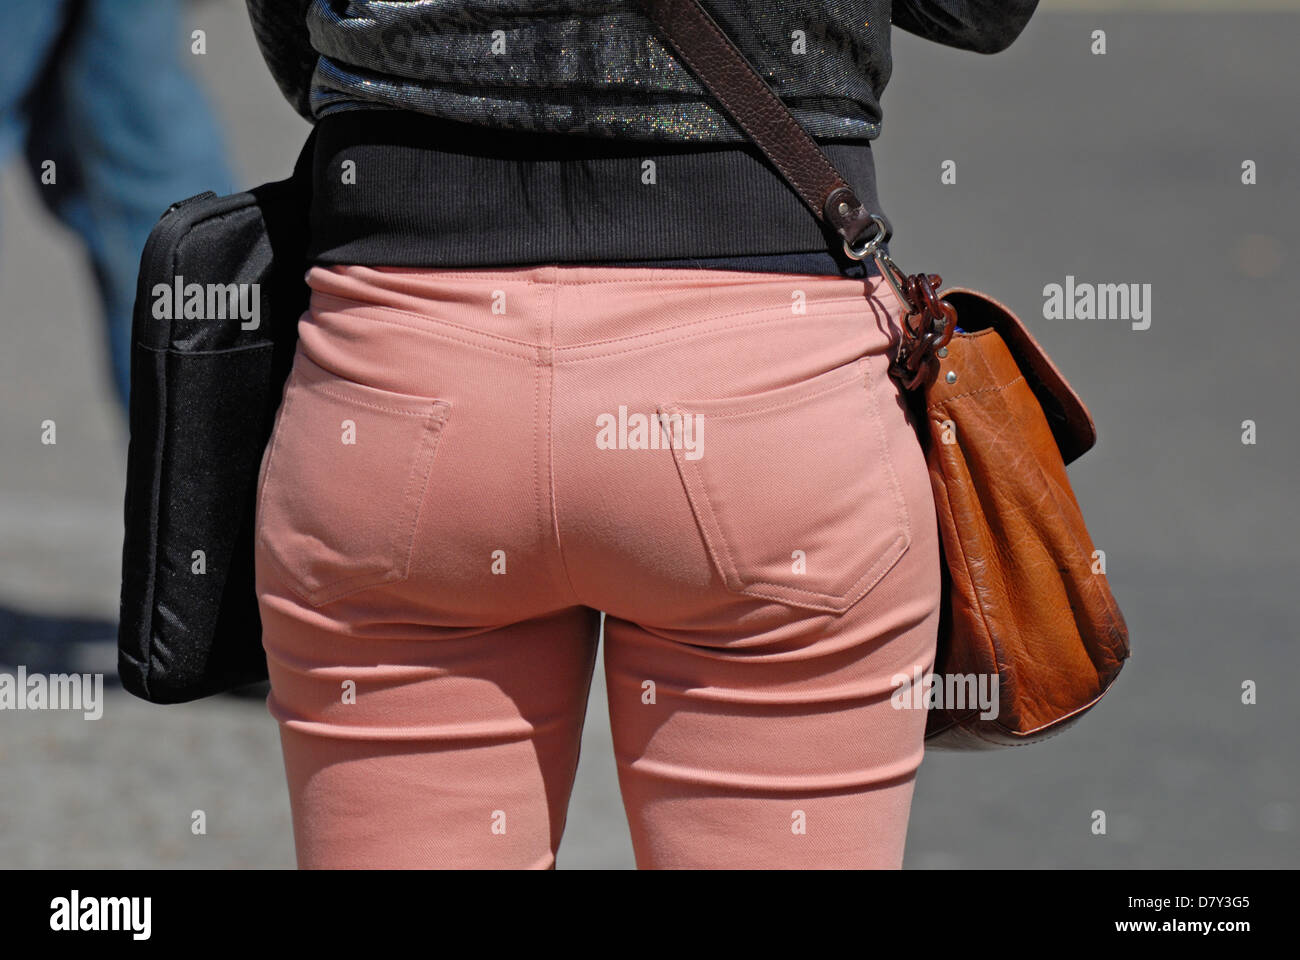 London, England, UK. Woman wearing tight, pink, creased jeans and carrying leather bag - Stock Image